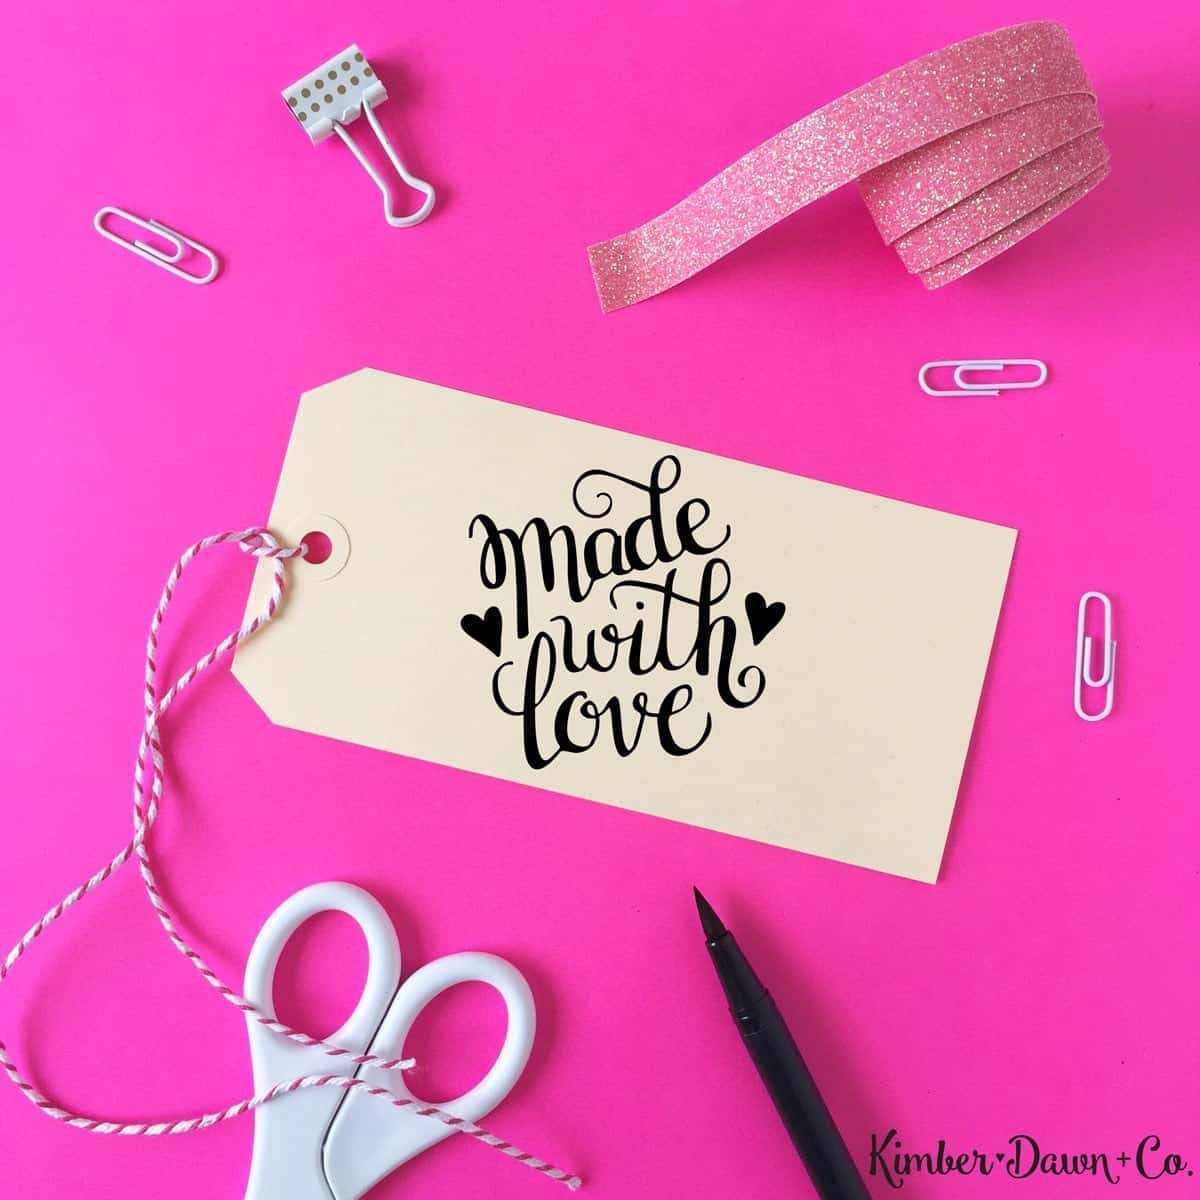 Made with Love - Free Cut File for Silhouette CAMEO + Cricut crafts